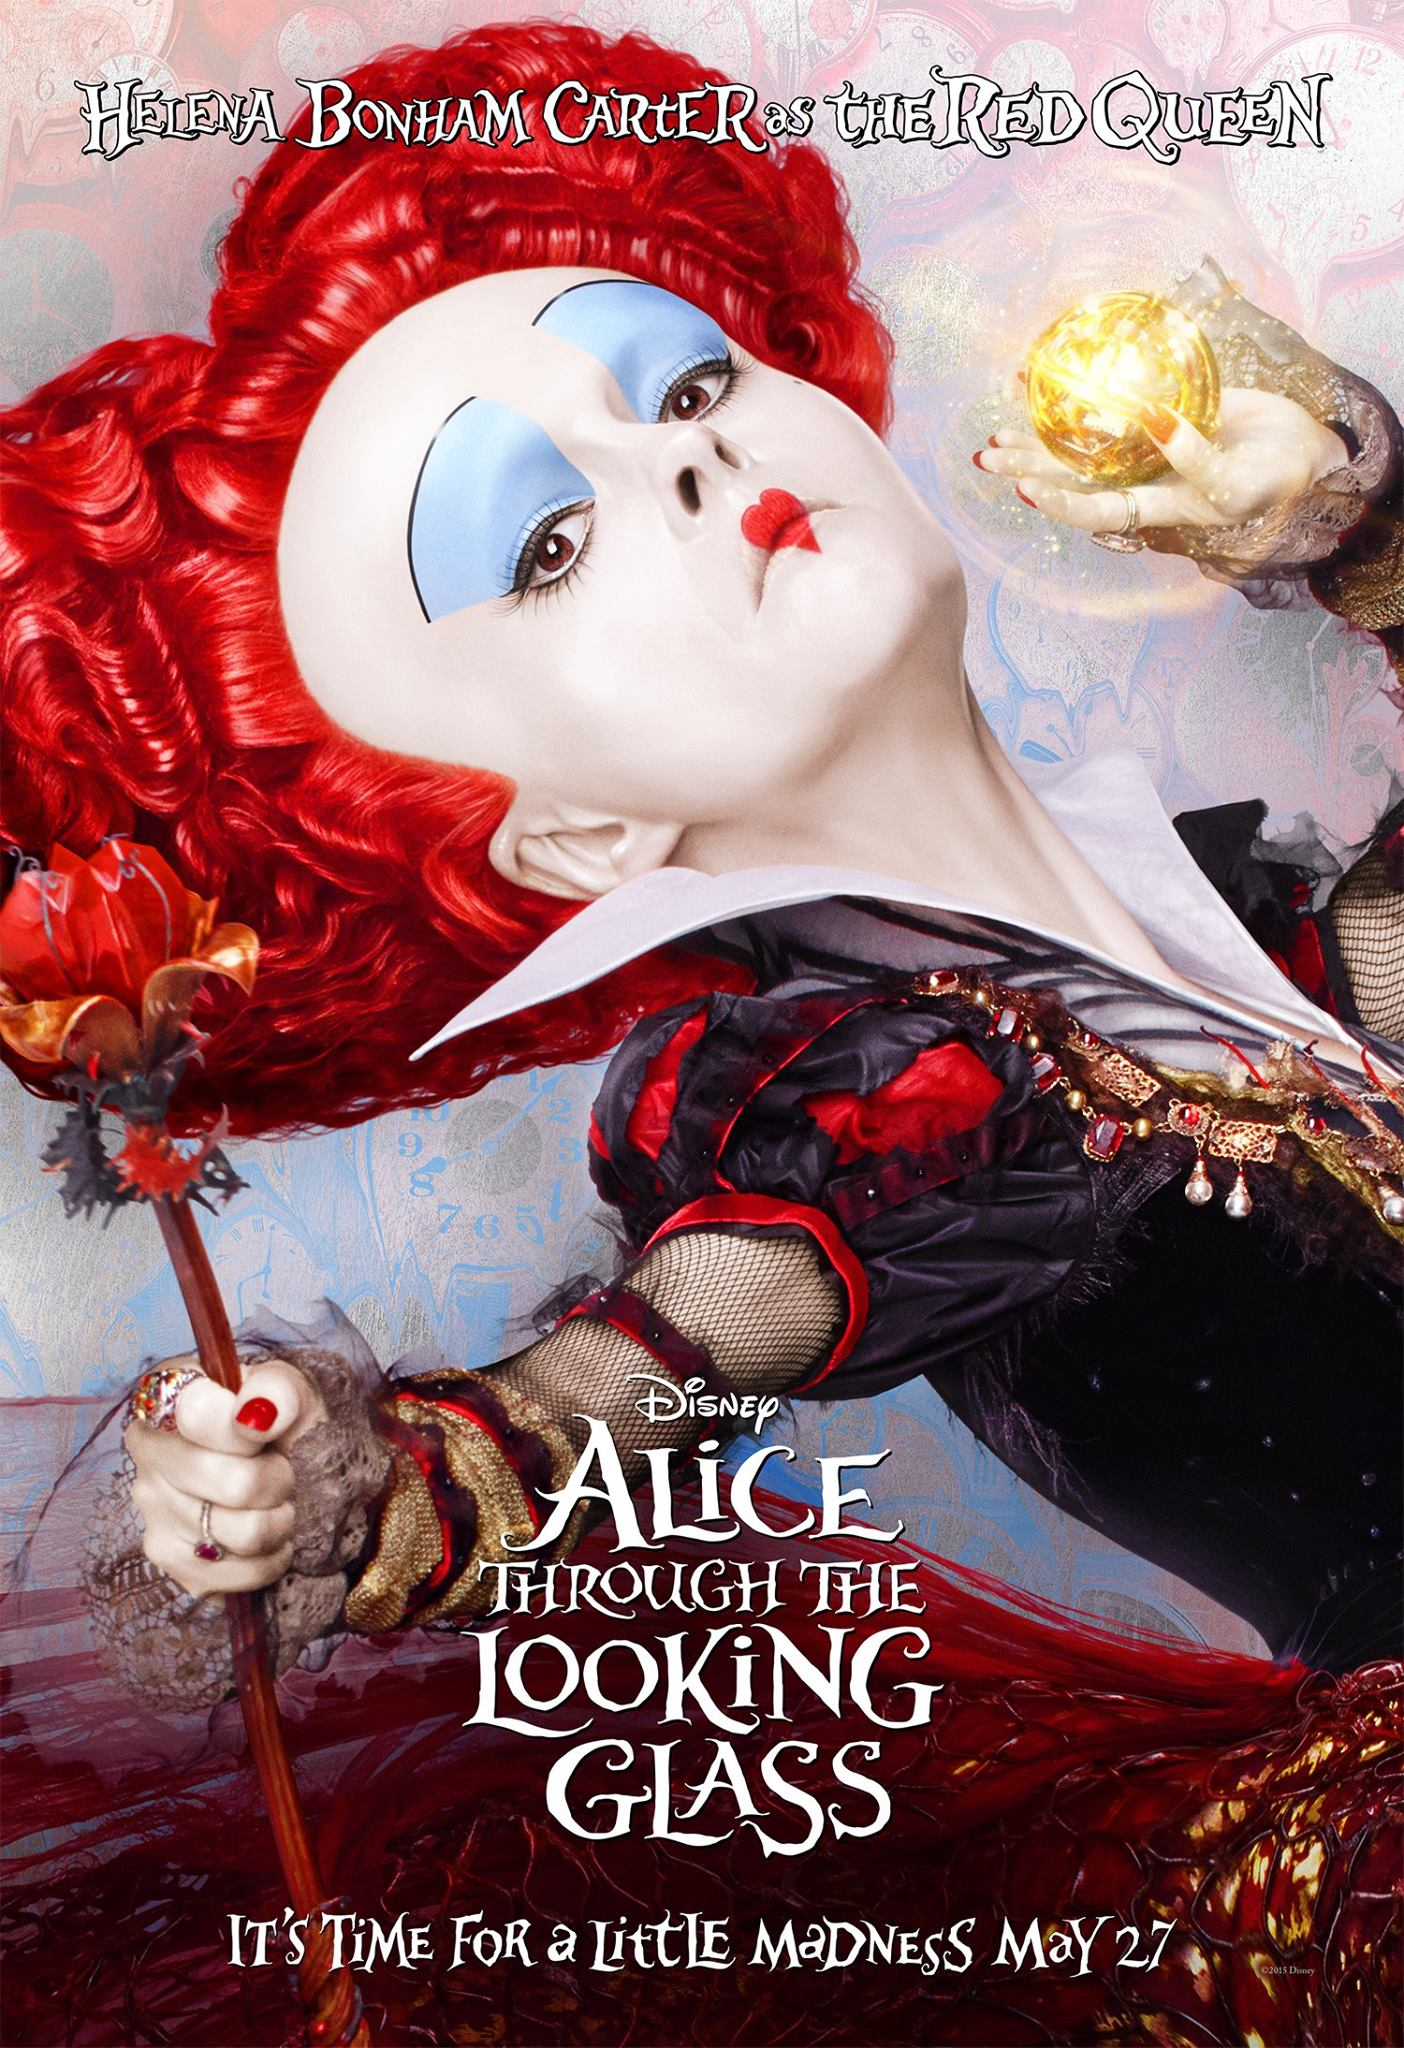 Alice-through-the-looking-glass-redqueen